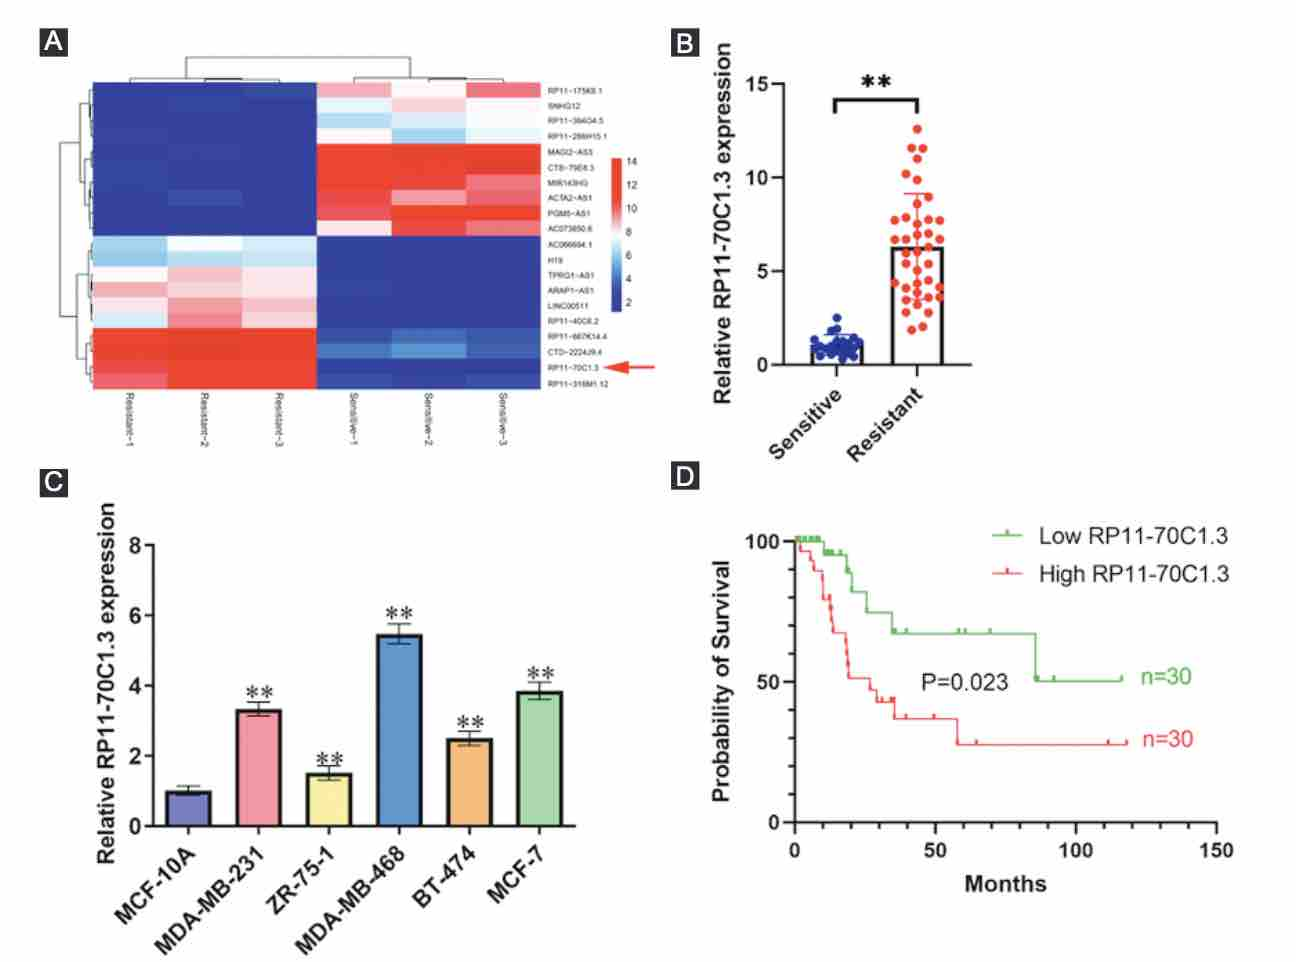 Long noncoding RNA RP11-70C1.3 confers chemoresistance of breast cancer cells through miR-6736-3p/NRP-1 axis